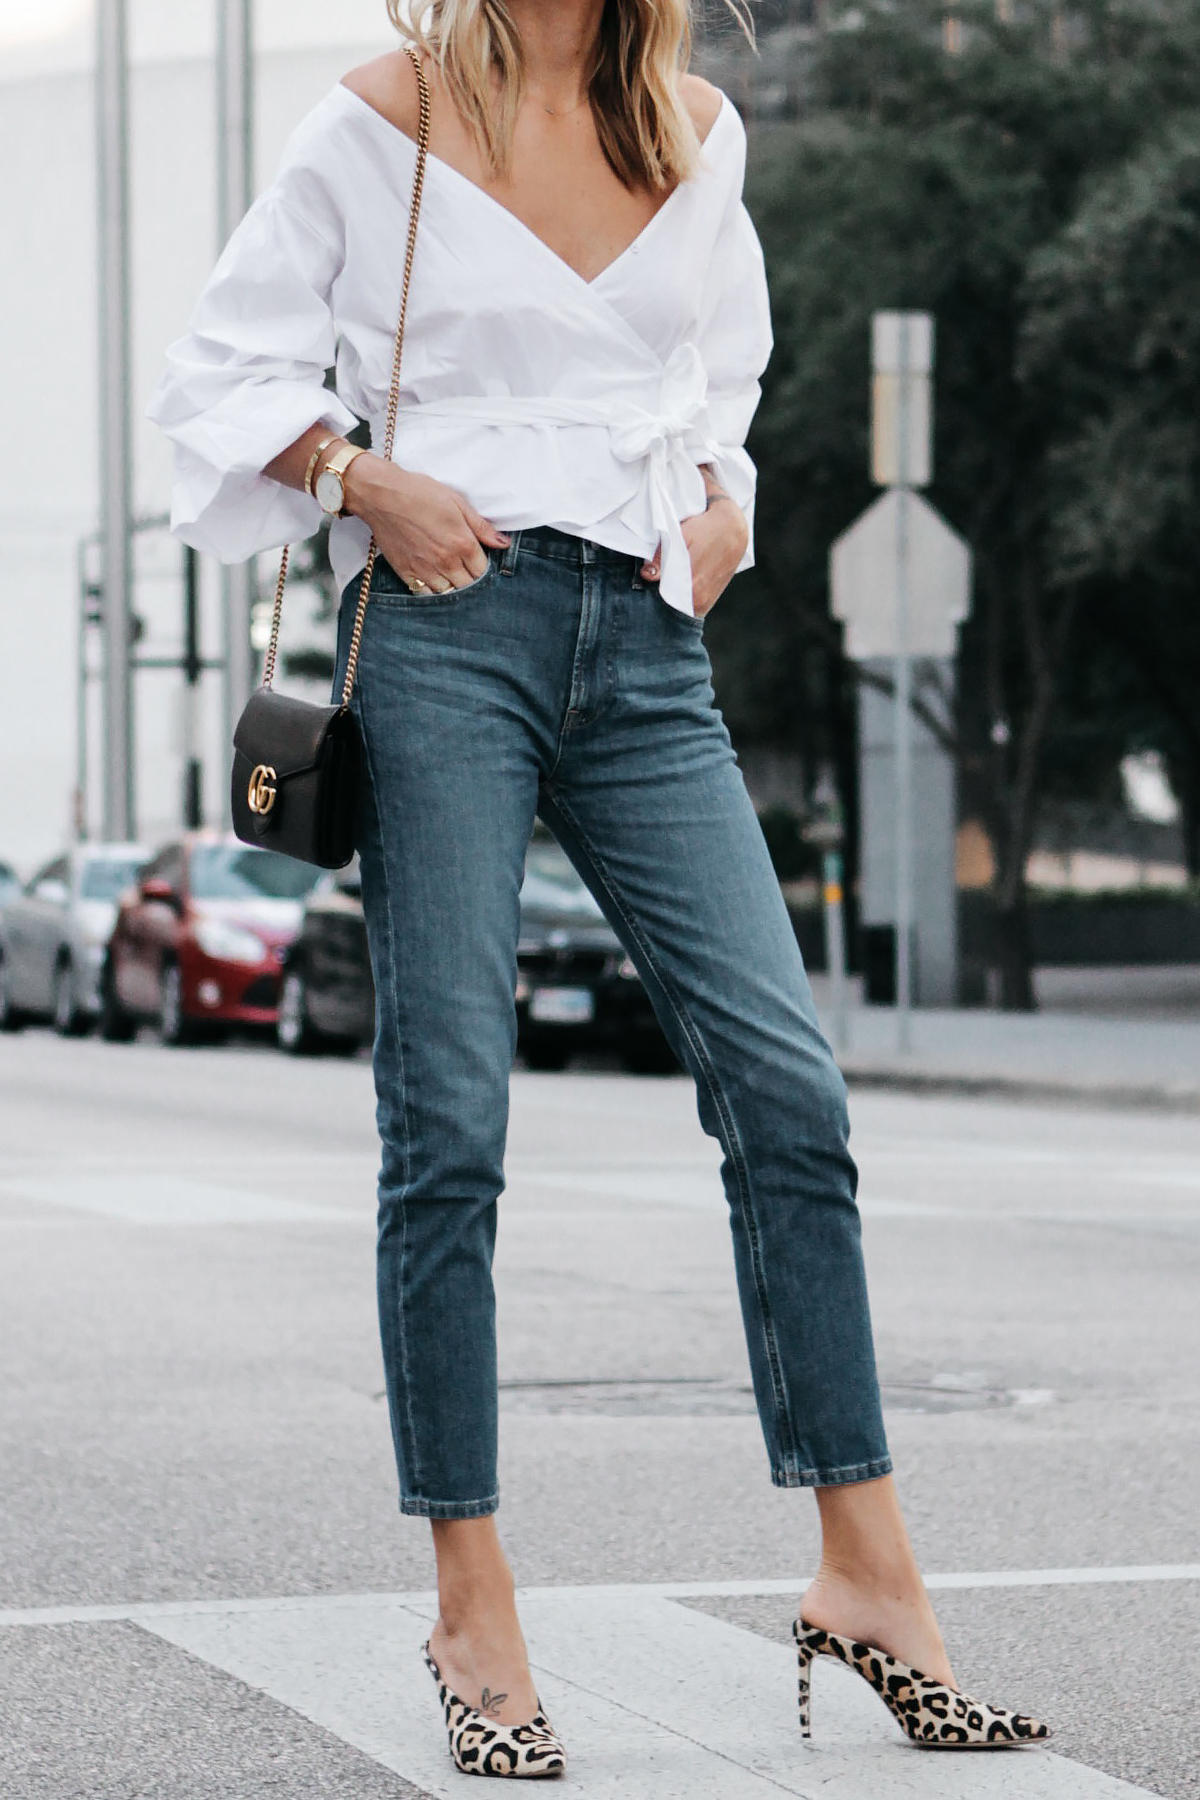 Club Monaco White Ruffle Sleeve Wrap Top Gucci Marmont Handbag Everlane Boyfriend Jeans Club Monaco Leopard Heels Fashion Jackson Dallas Blogger Fashion Blogger Street Style